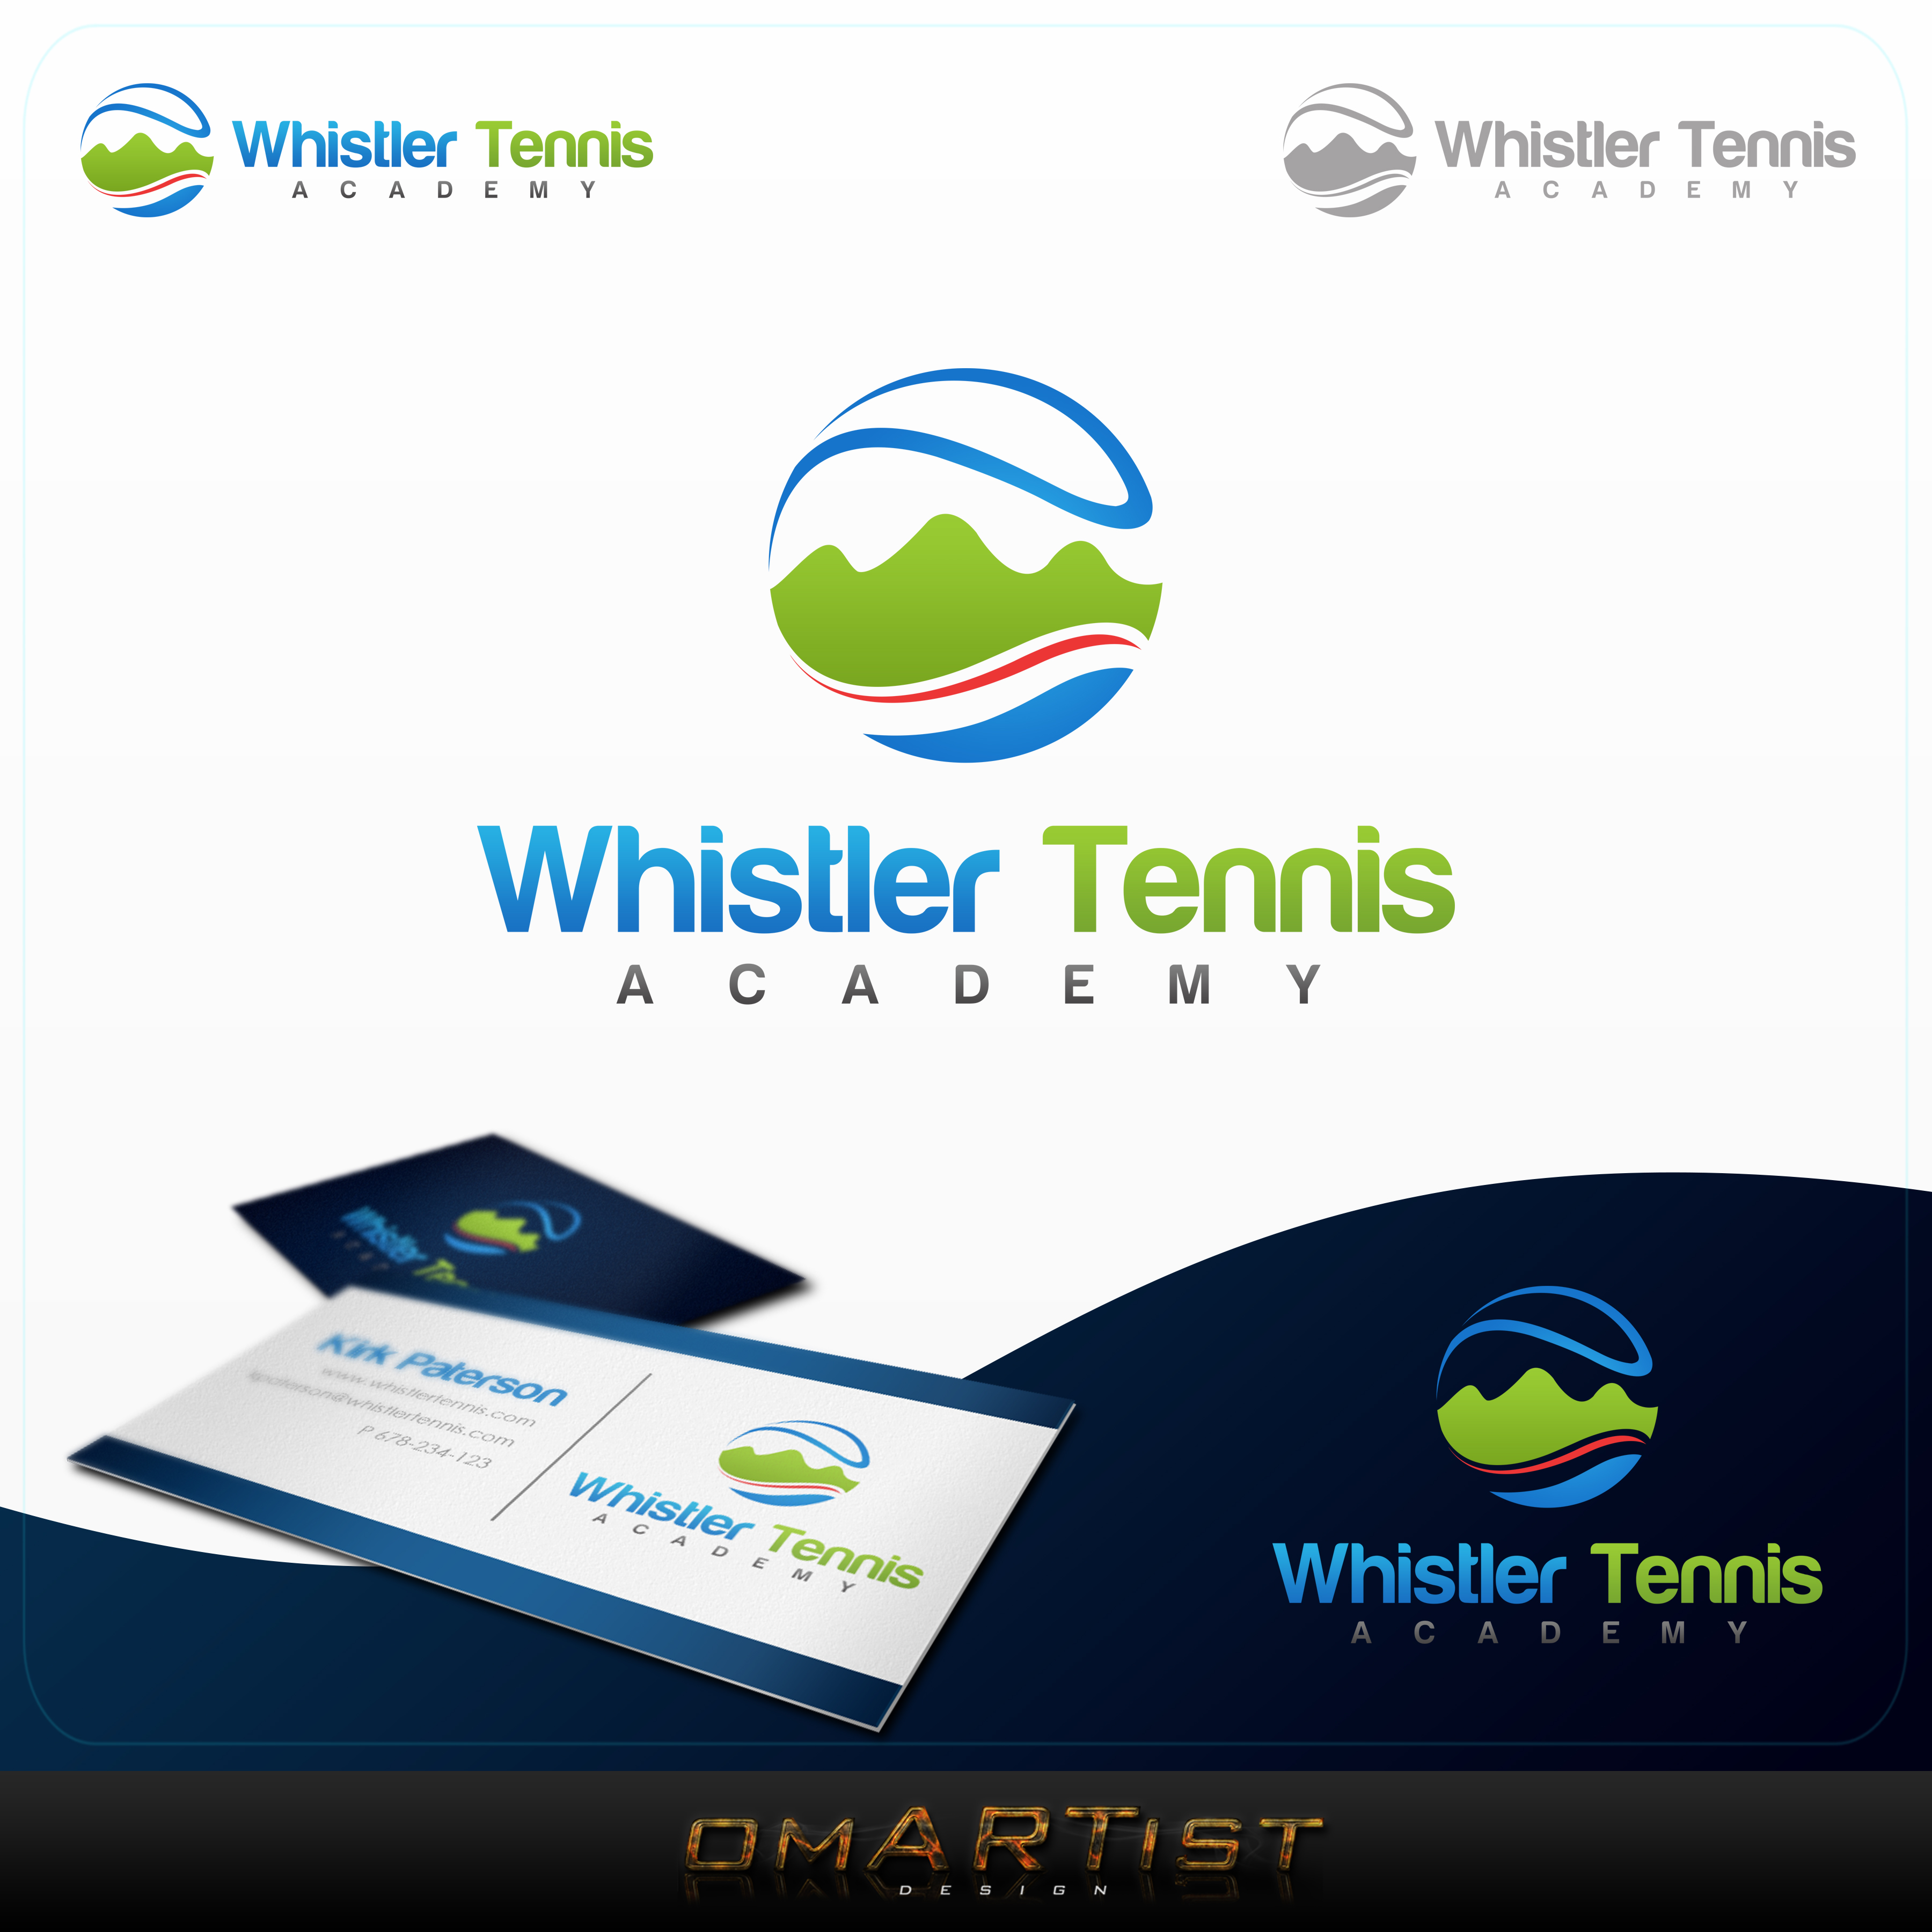 Logo Design by omARTist - Entry No. 214 in the Logo Design Contest Imaginative Logo Design for Whistler Tennis Academy.